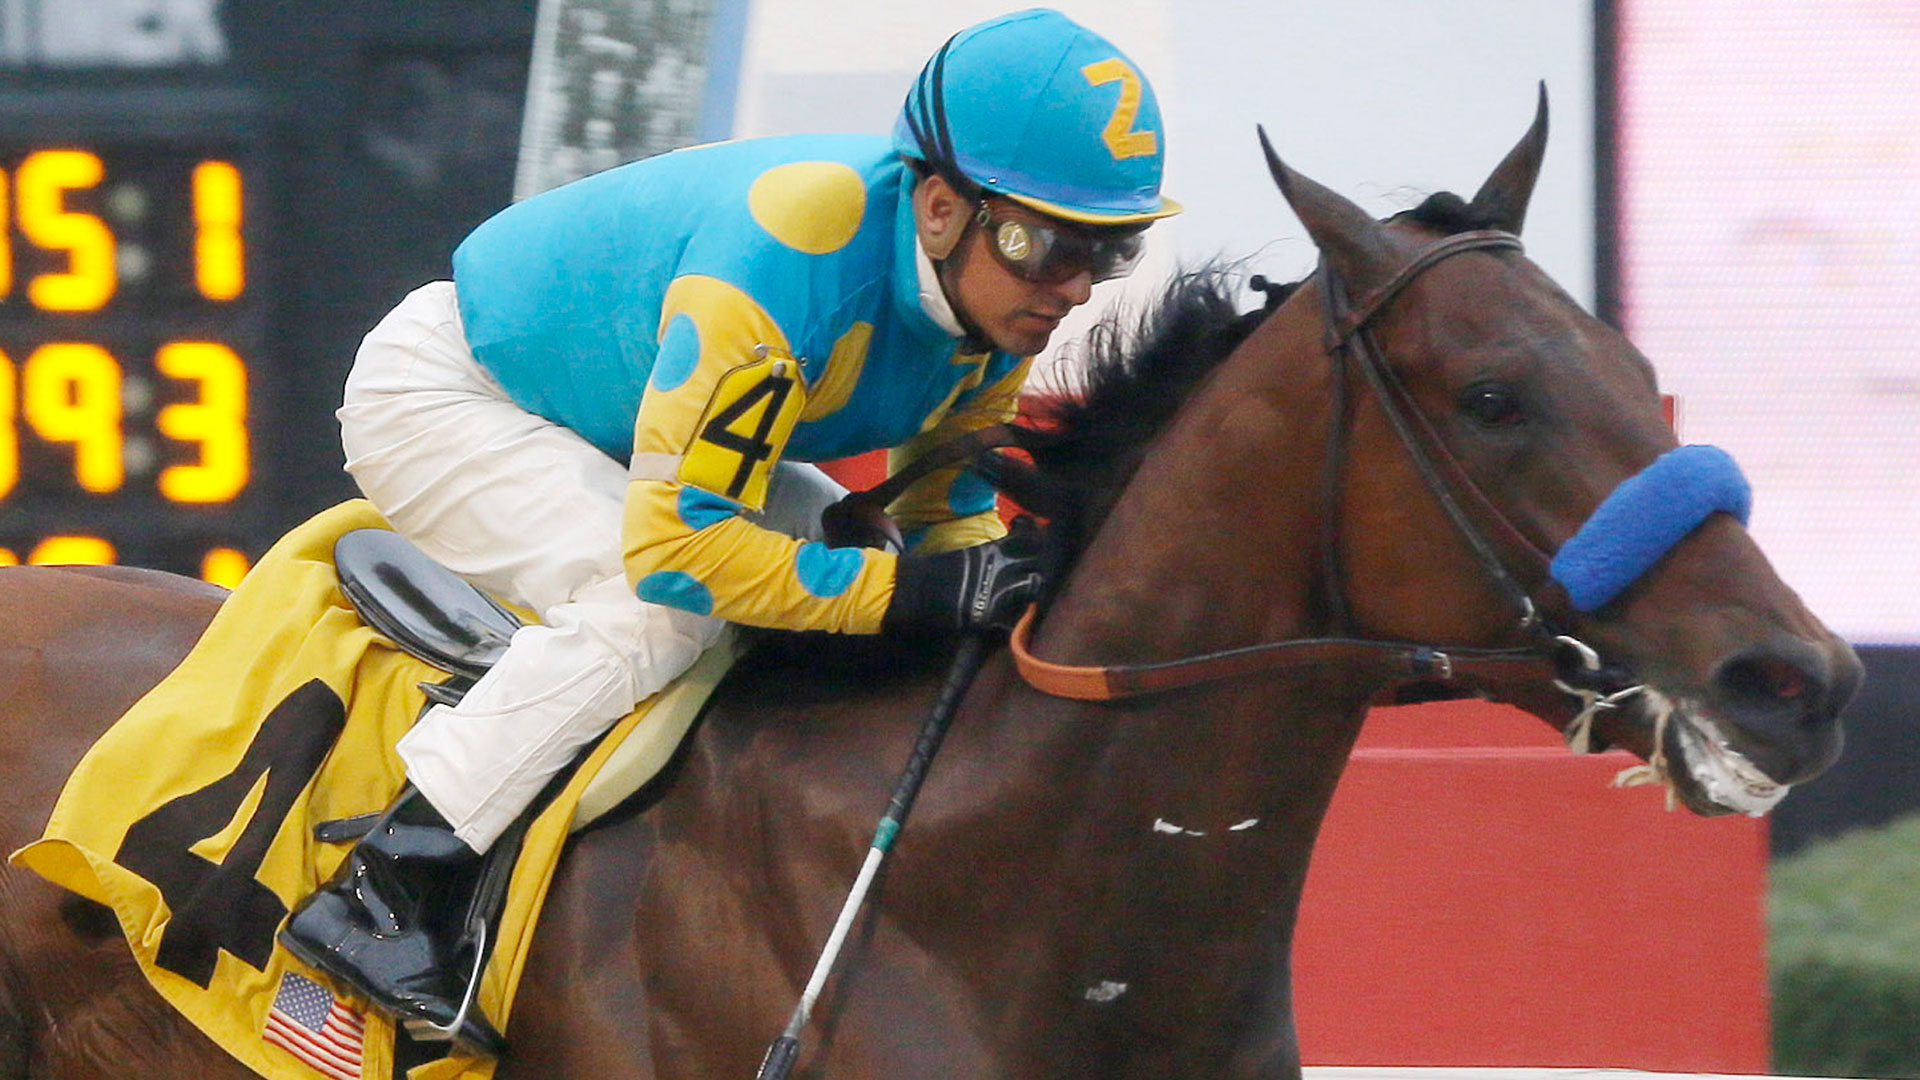 2015 Kentucky Derby: Is there any beating Baffert's 1-2 punch of American Pharoah and Dortmund?